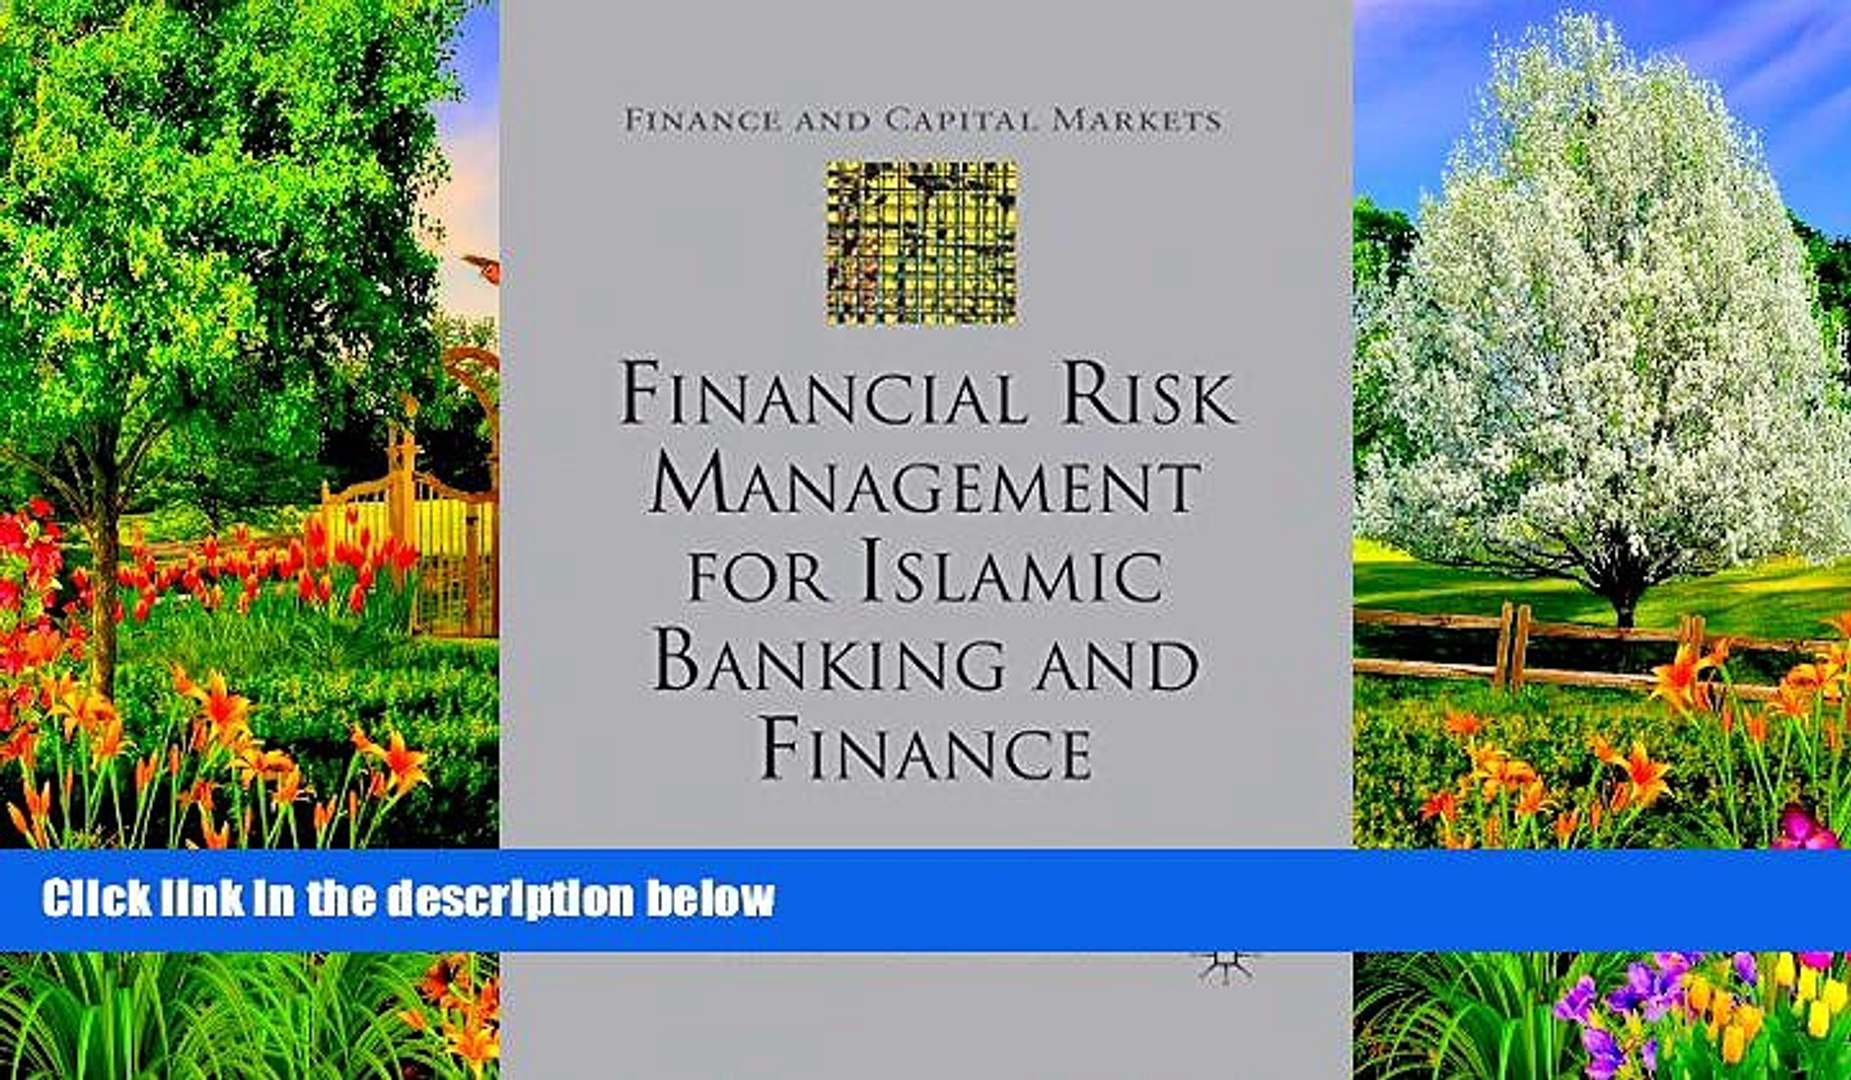 Online I. Akkizidis Financial Risk Management for Islamic Banking and Finance (Finance and Capital